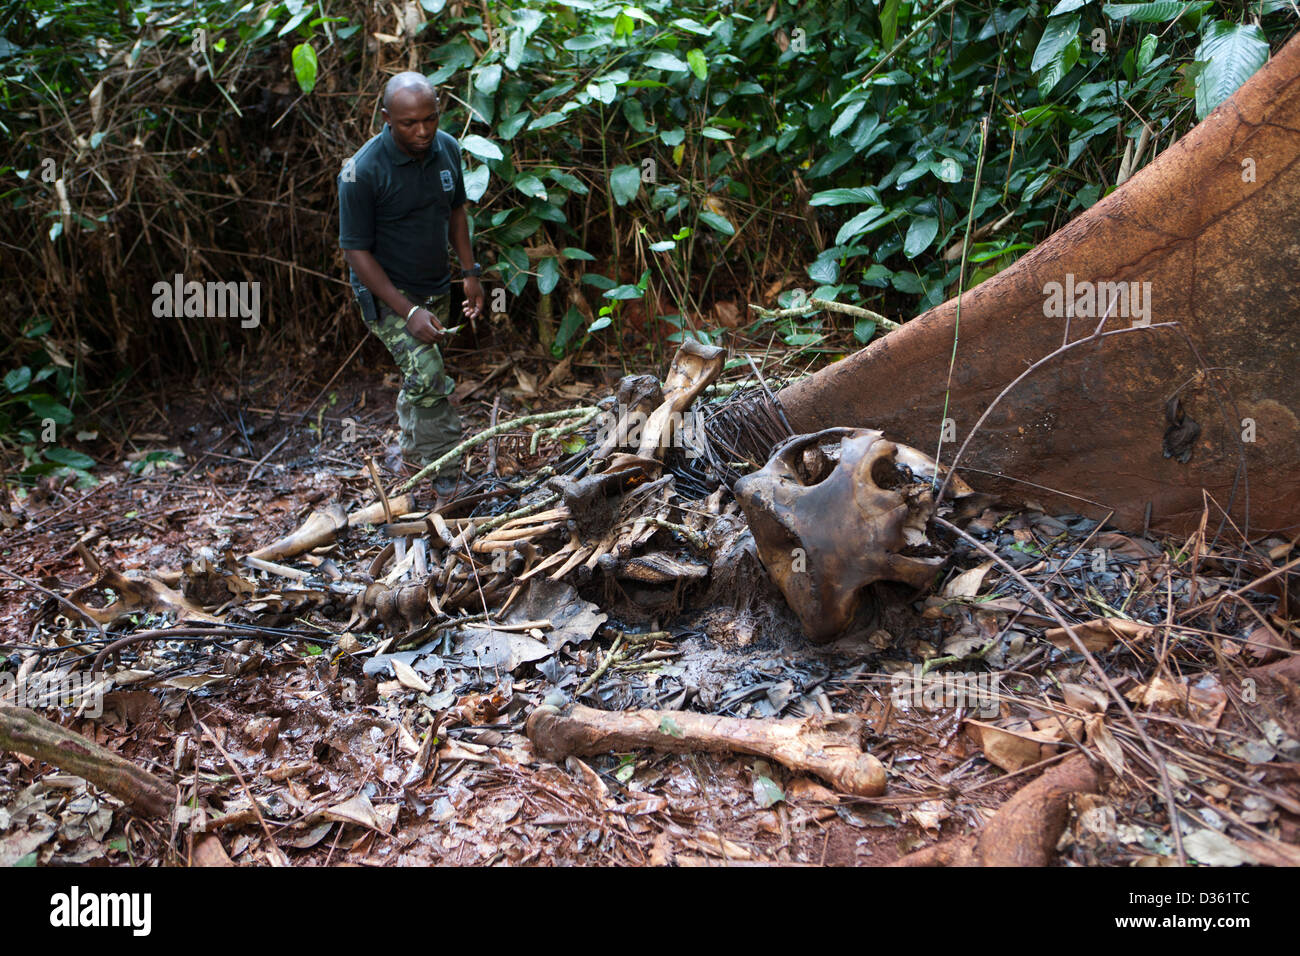 CAMEROON, 1st October 2012:  Ekodek Gatien, WWF Park Ranger, with the remains of a female forest elephant killed - Stock Image